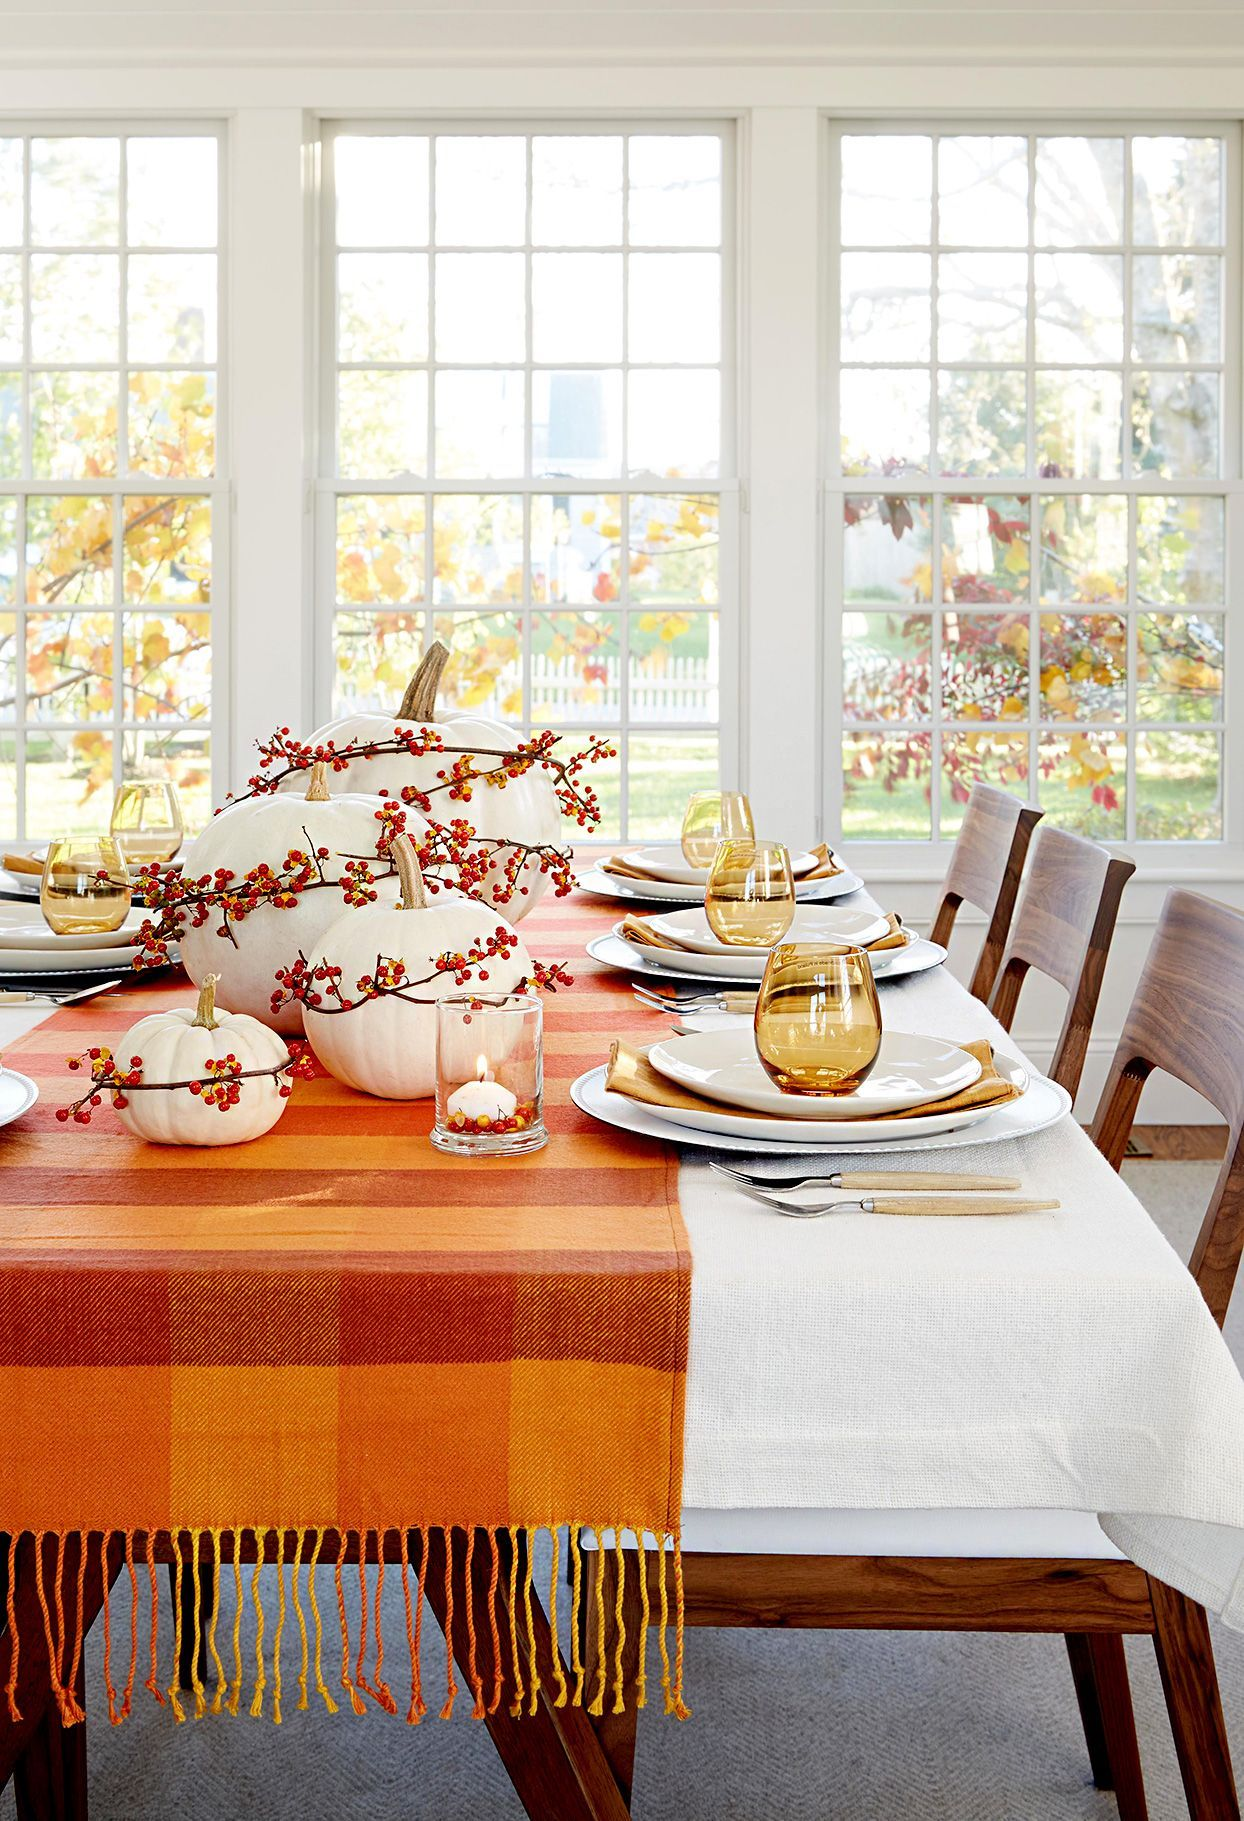 Beautiful Pumpkin Decorating Ideas to Get Your Home Ready for Fall #thanksgivingtablesettings If you're hosting Thanksgiving dinner this year, take notes from this effortless, simple Thanksgiving table setting. #fall #falldecor #pumpkin #pumpkindecor #pumpkindecorations #decoratingwithpumpkins #beautiful #bhg